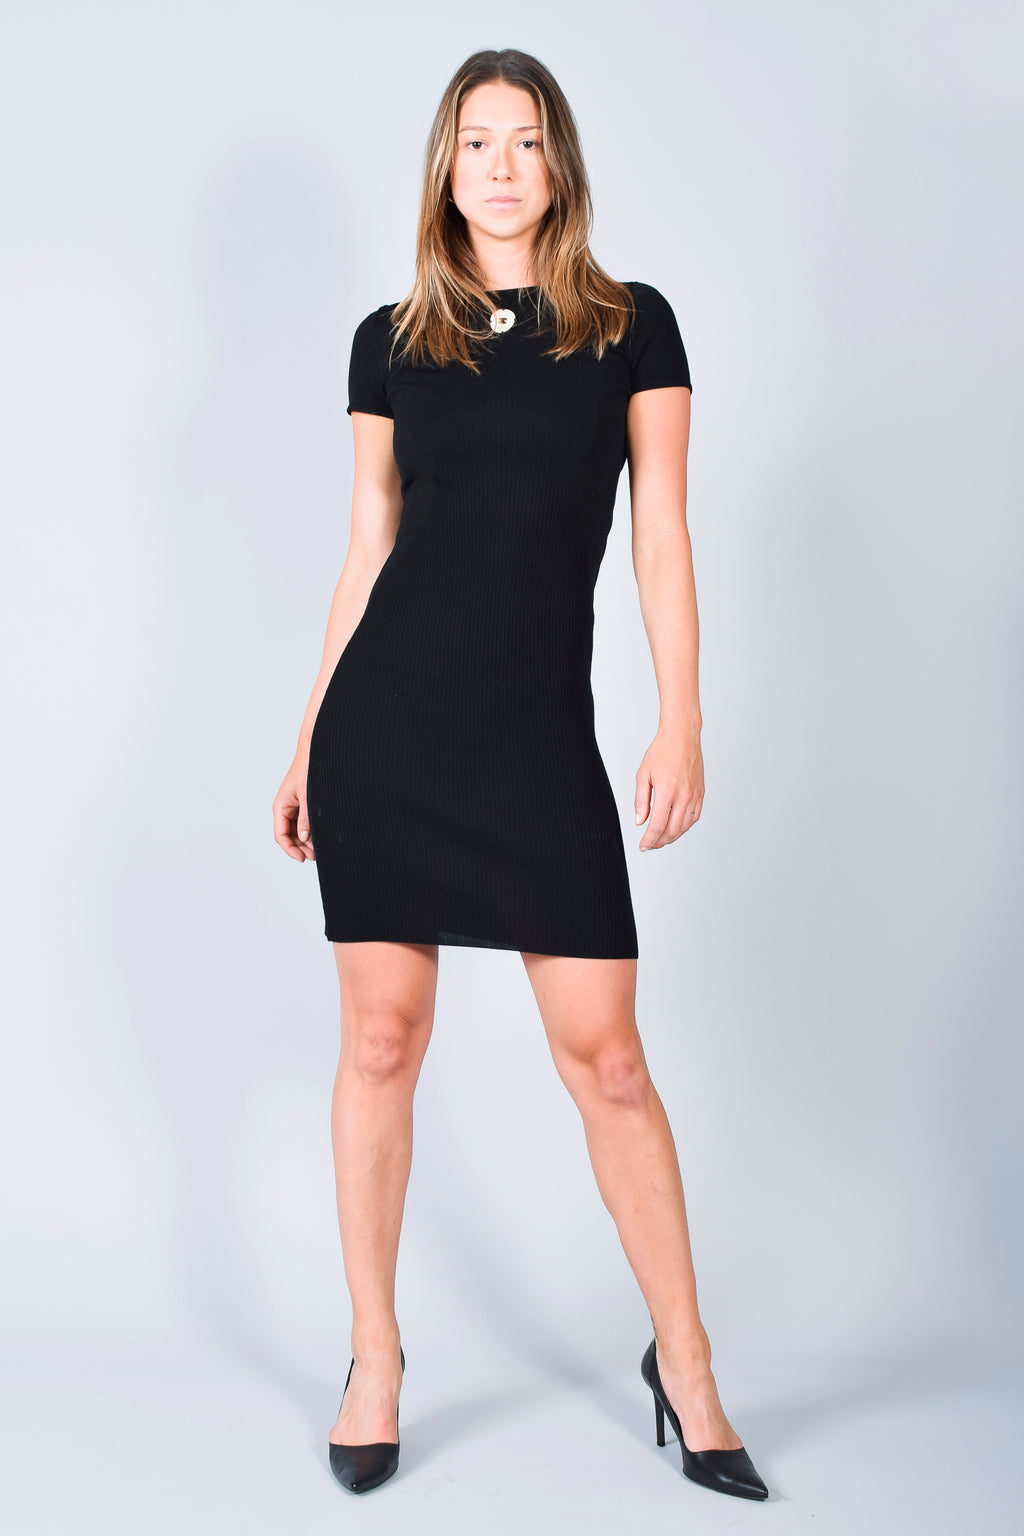 Chanel Black Logo Knit Dress with Camelia Size 36